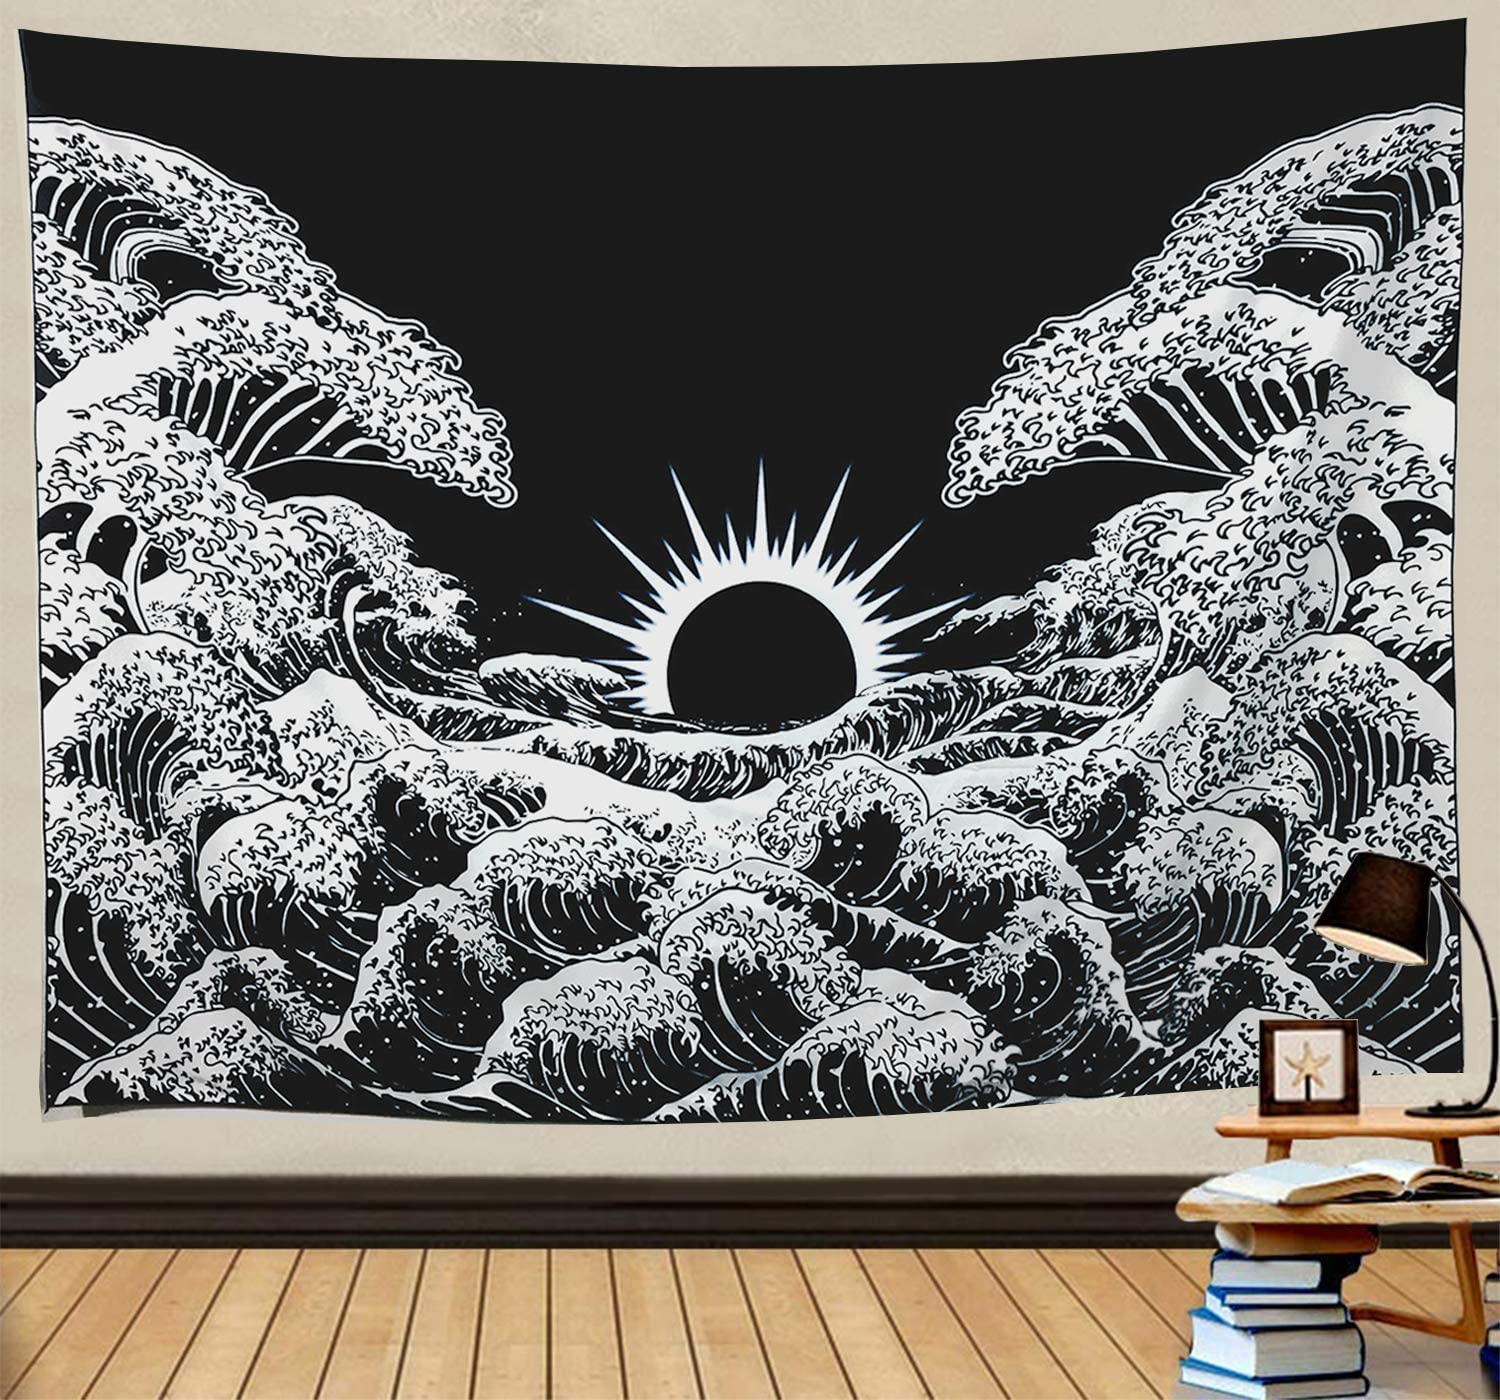 Wekymuu Ocean Wave Tapestry Black and White Tapestry Japanese Tapestry Wall Hanging Great Wave Tapestry for Bedroom(Black Wave51.2